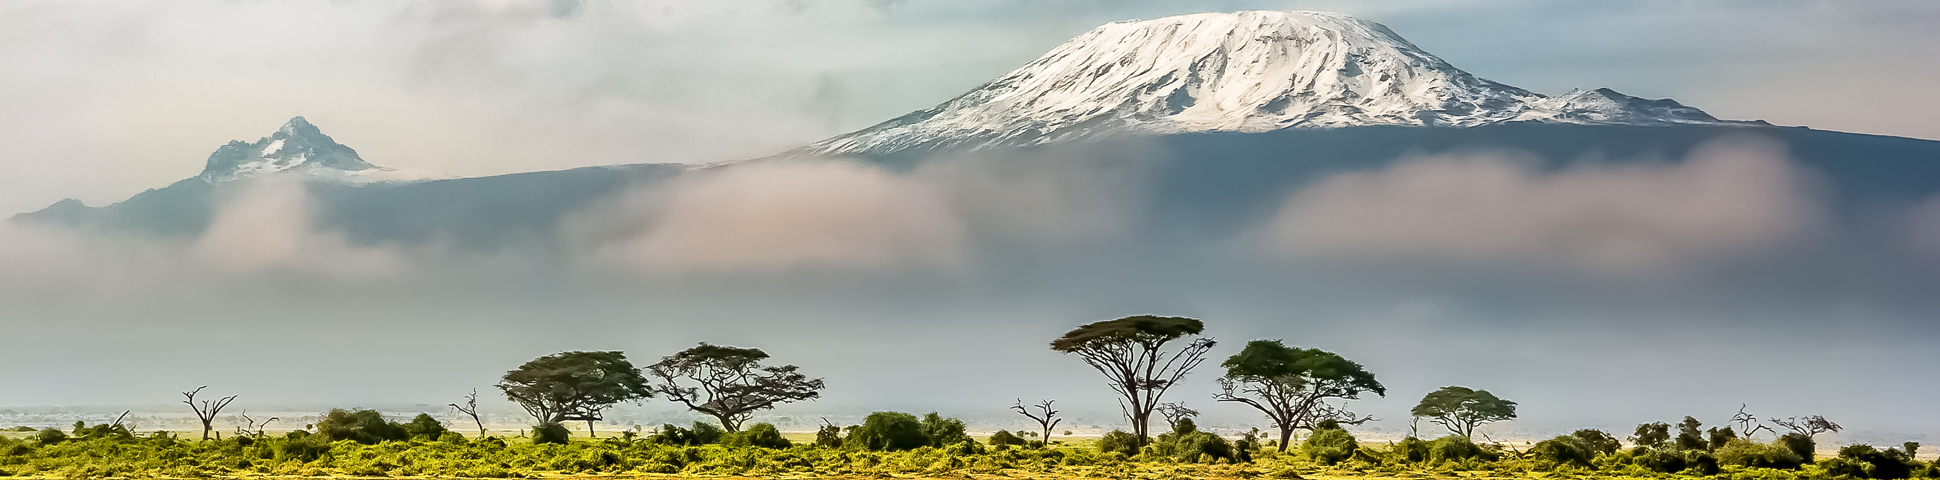 Panoramic view from Mount Kilimanjaro on Lemosho Route (slower pace) Tour